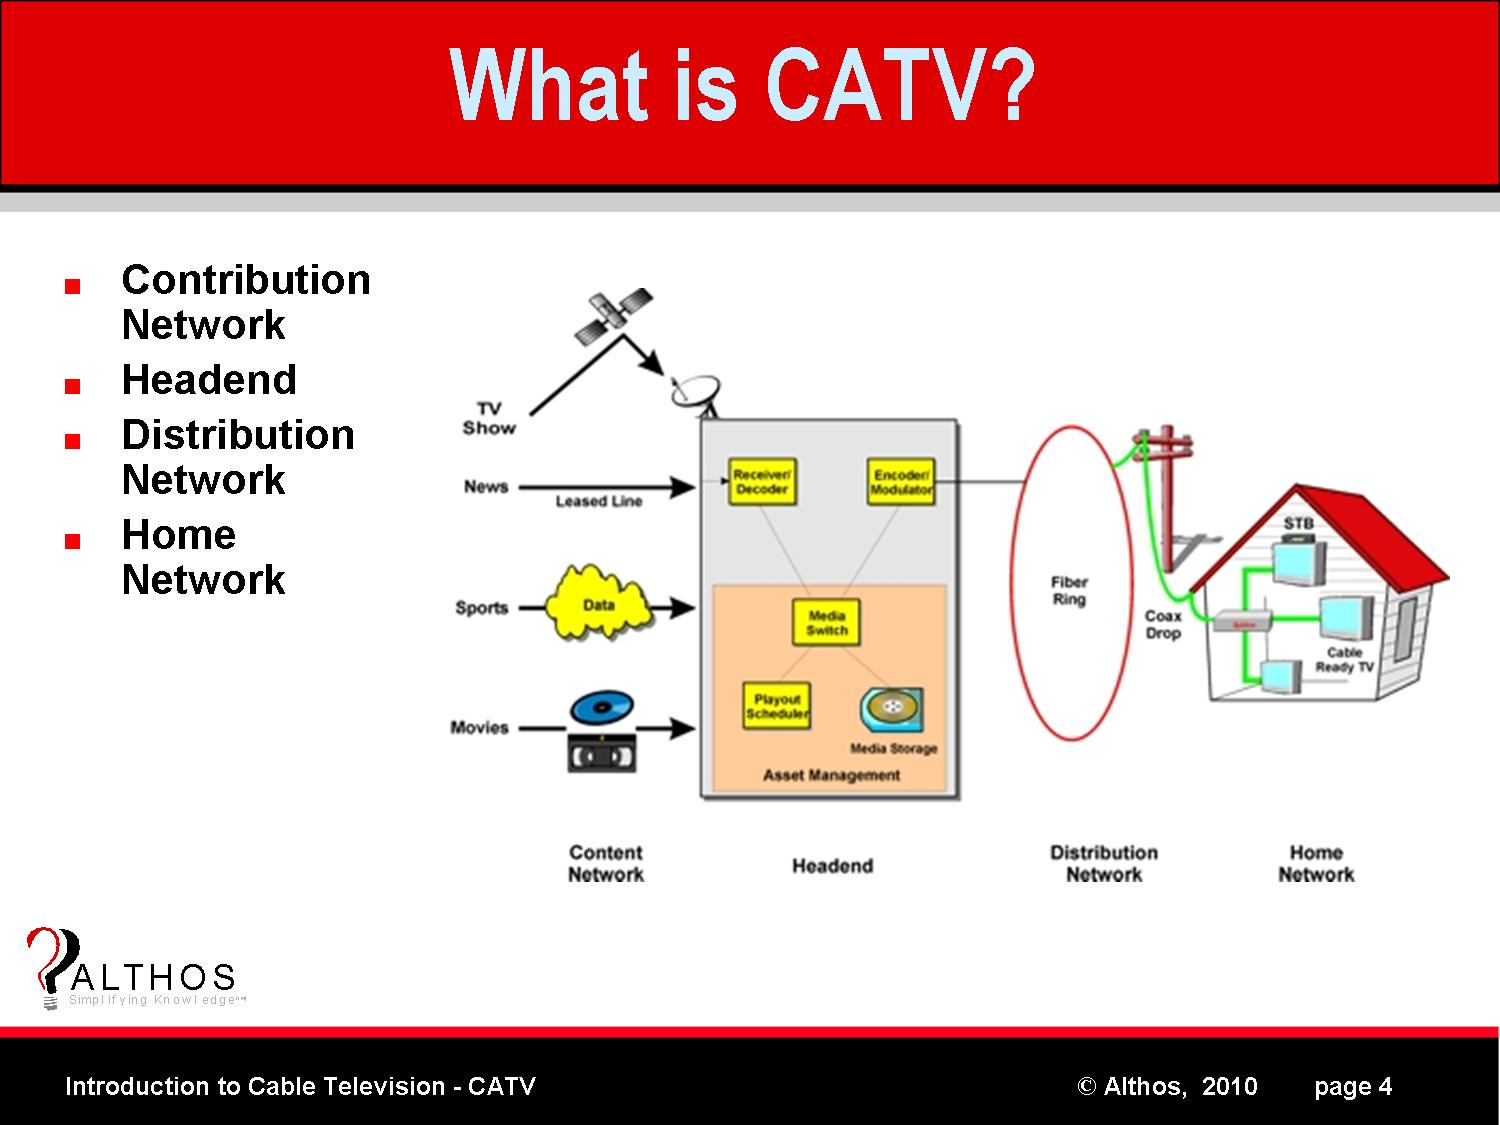 What is CATV?